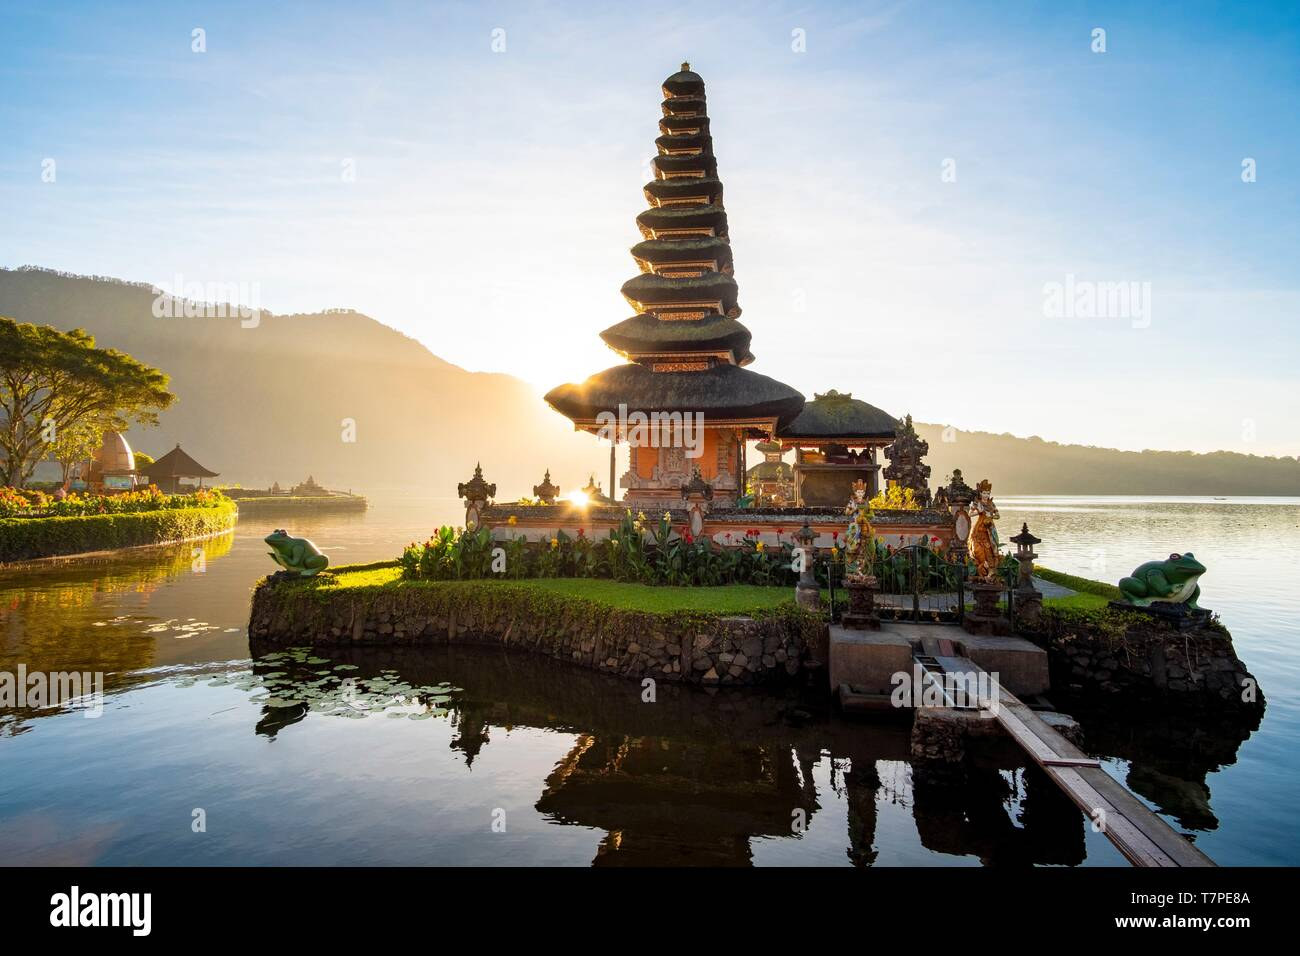 Indonesia, Bali, Center, Sunrise at Ulu Danu Bratan Temple Stock Photo